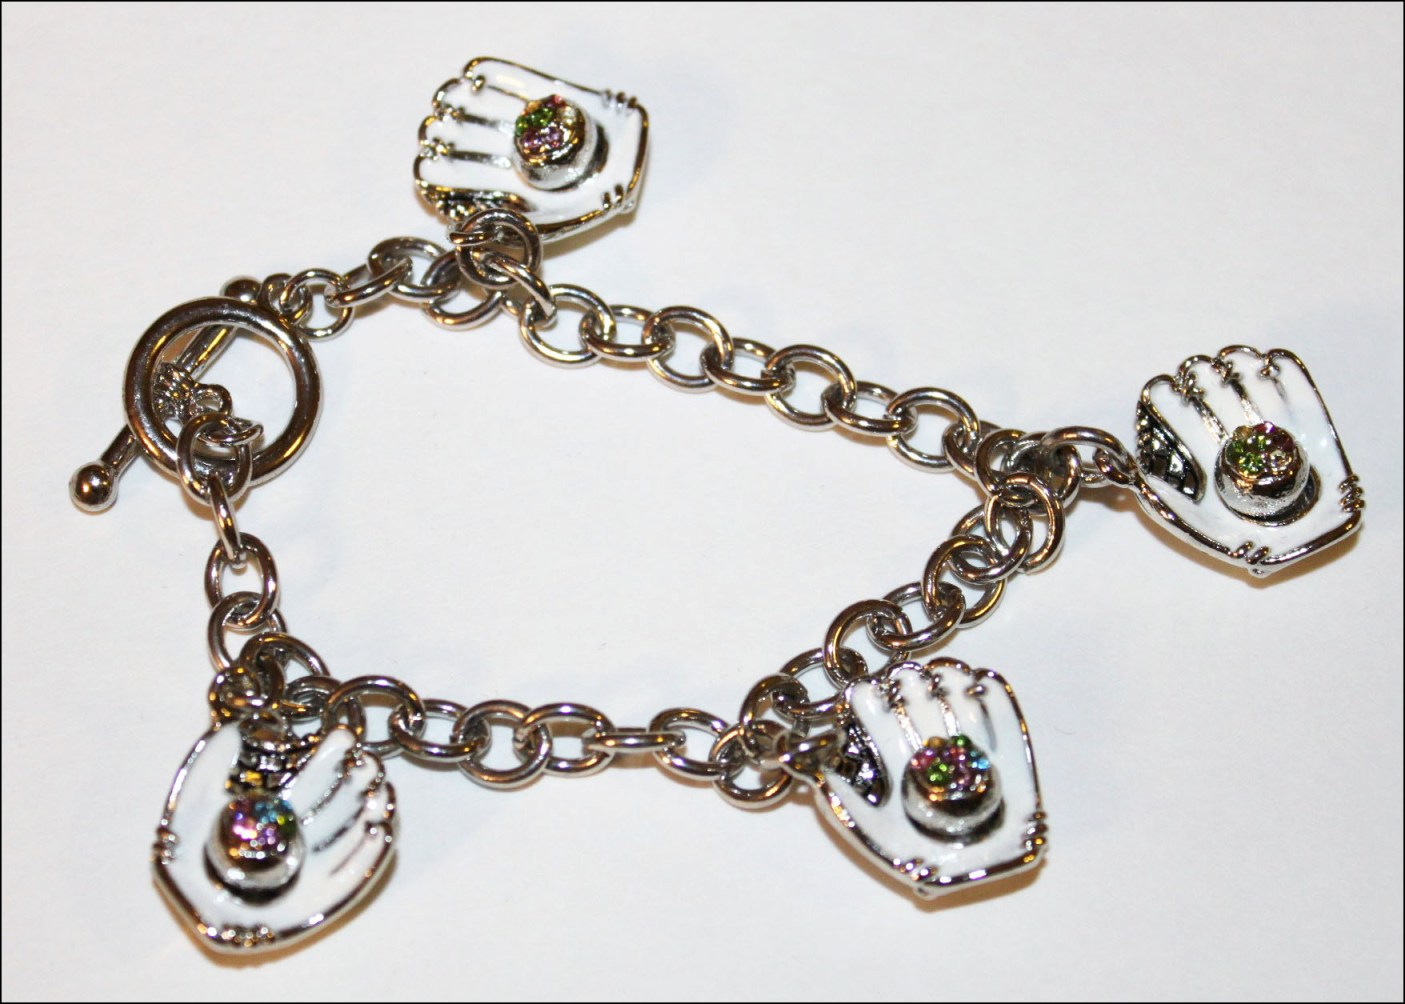 White Gloves Crystal Baseball Charm Bracelet